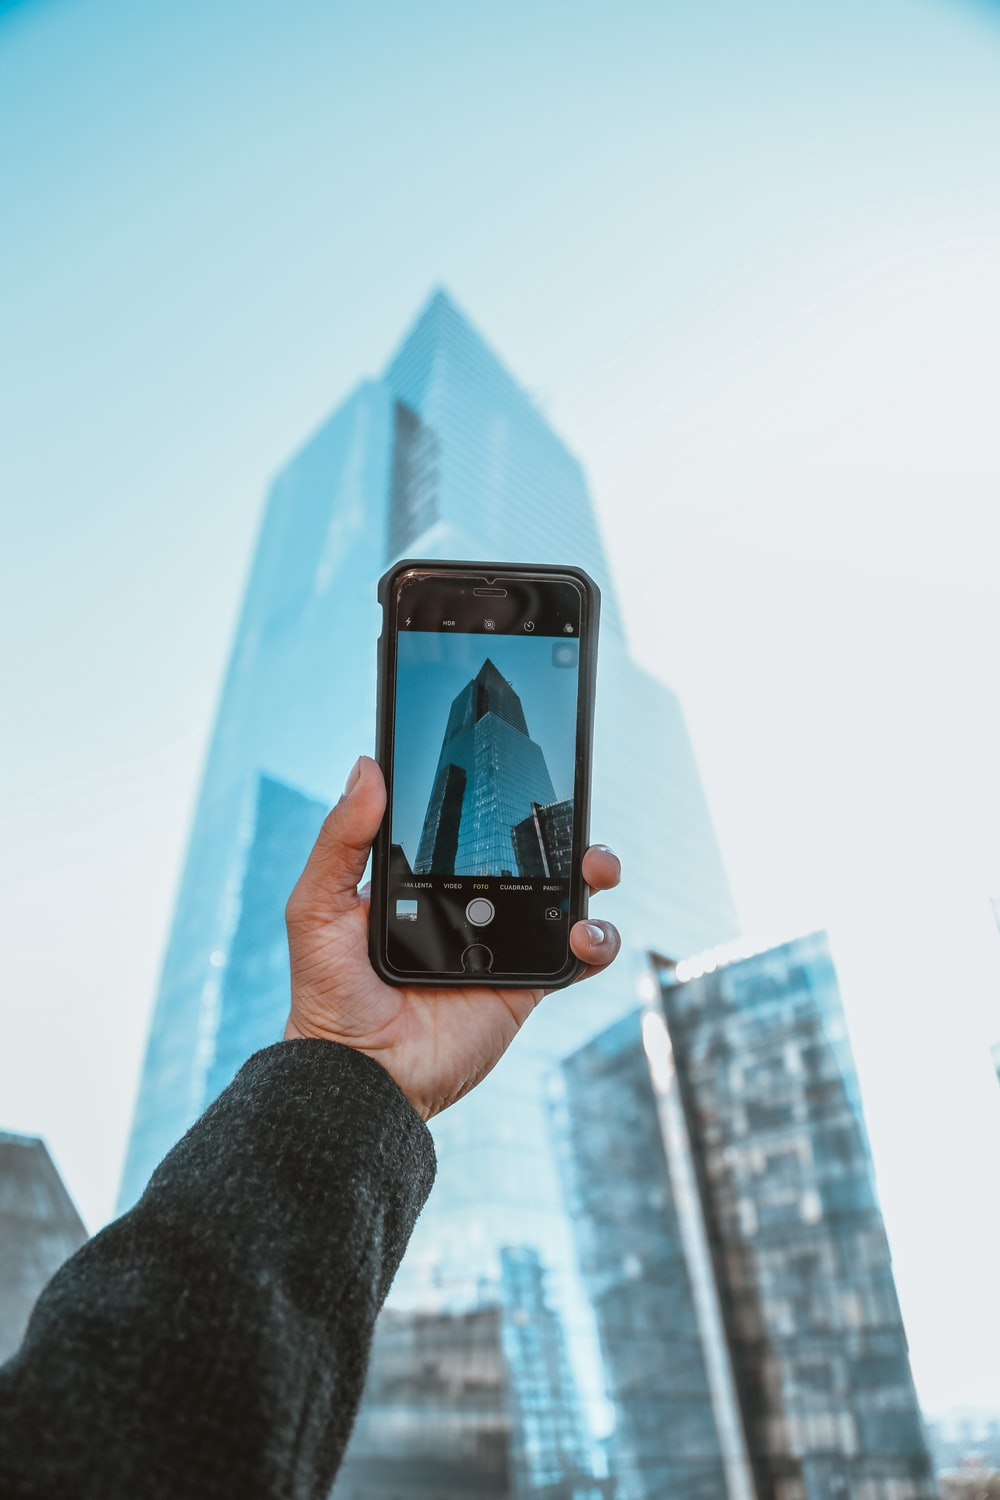 person holding black iphone 5 taking photo of high rise building